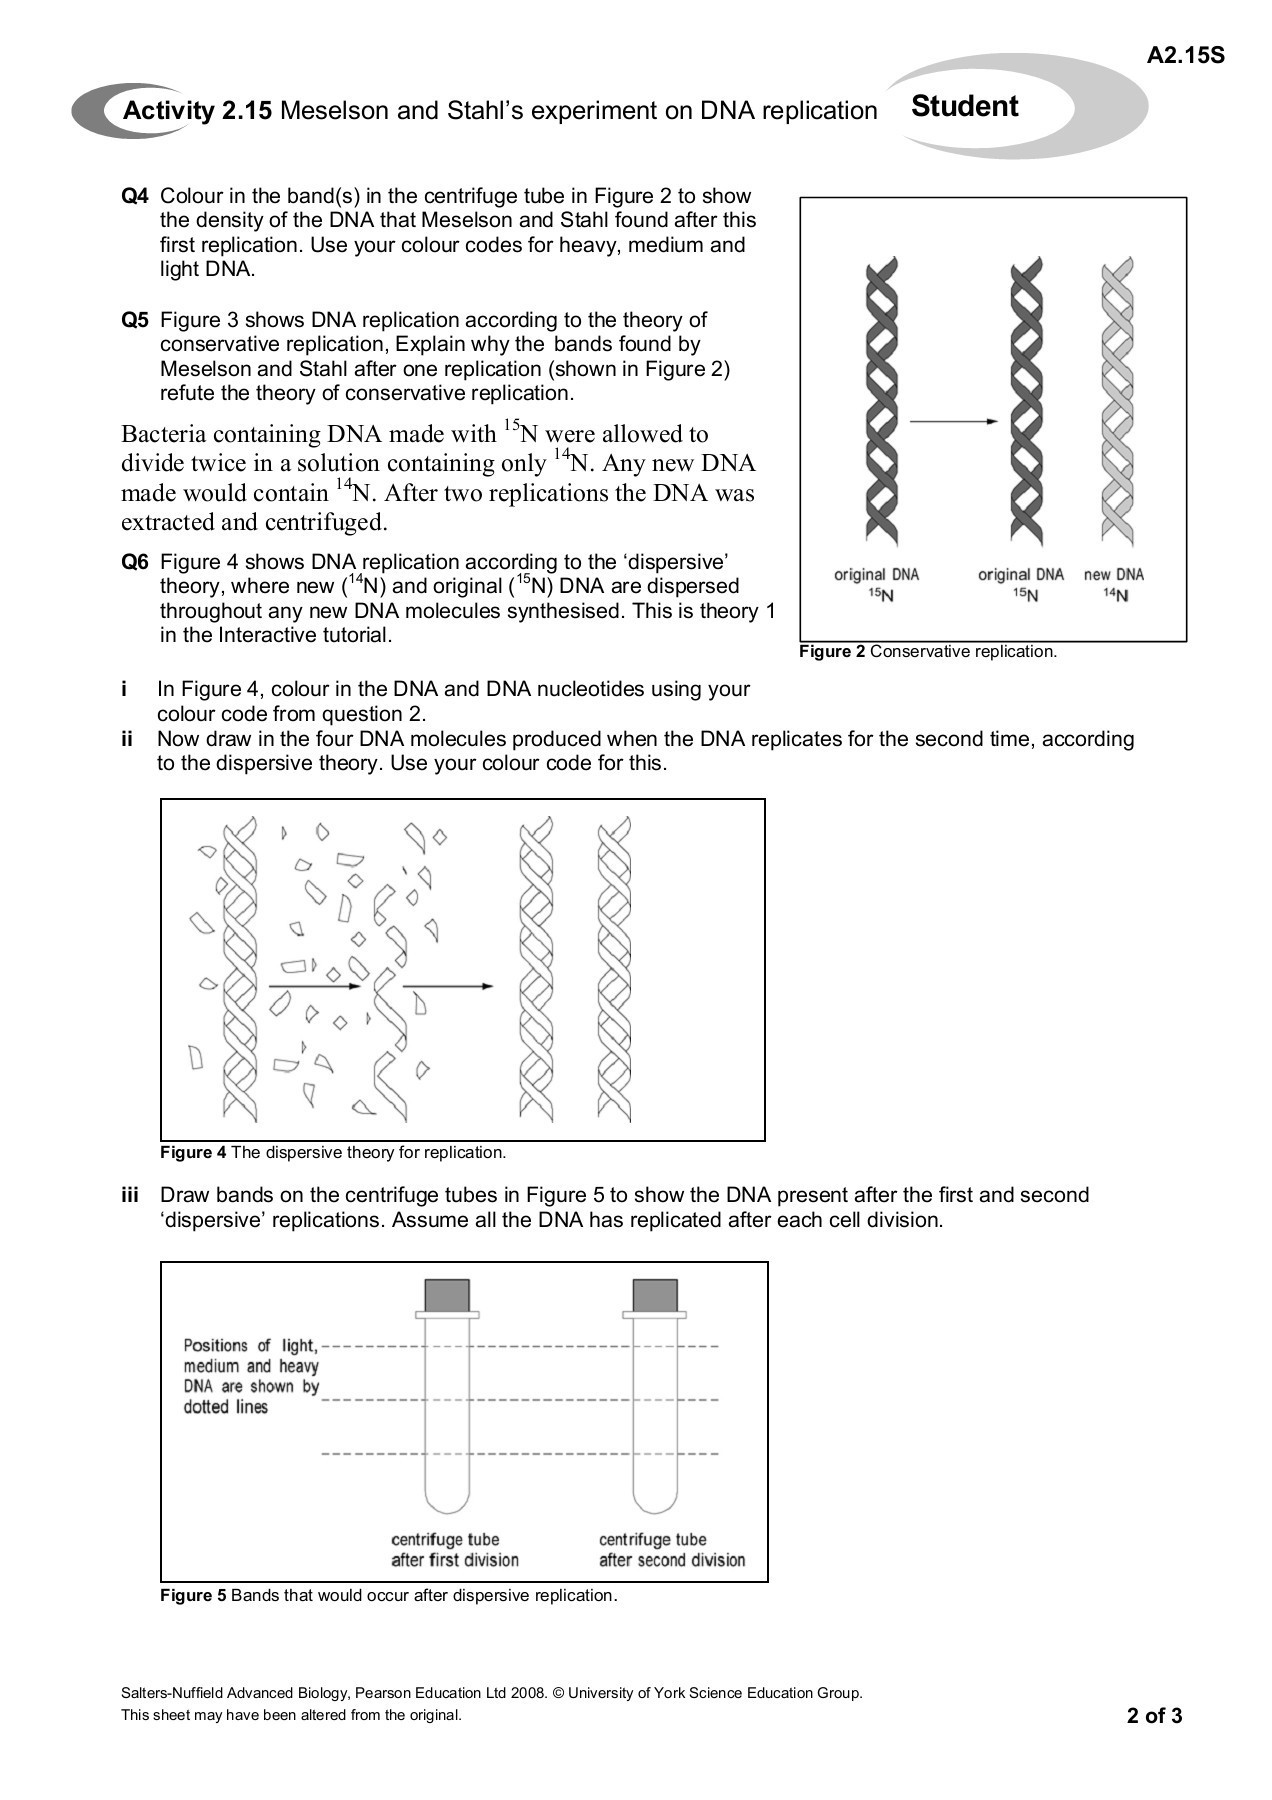 Dna and Replication Worksheet Activity 2 15 Meselson and Stahl S Experiment On Dna